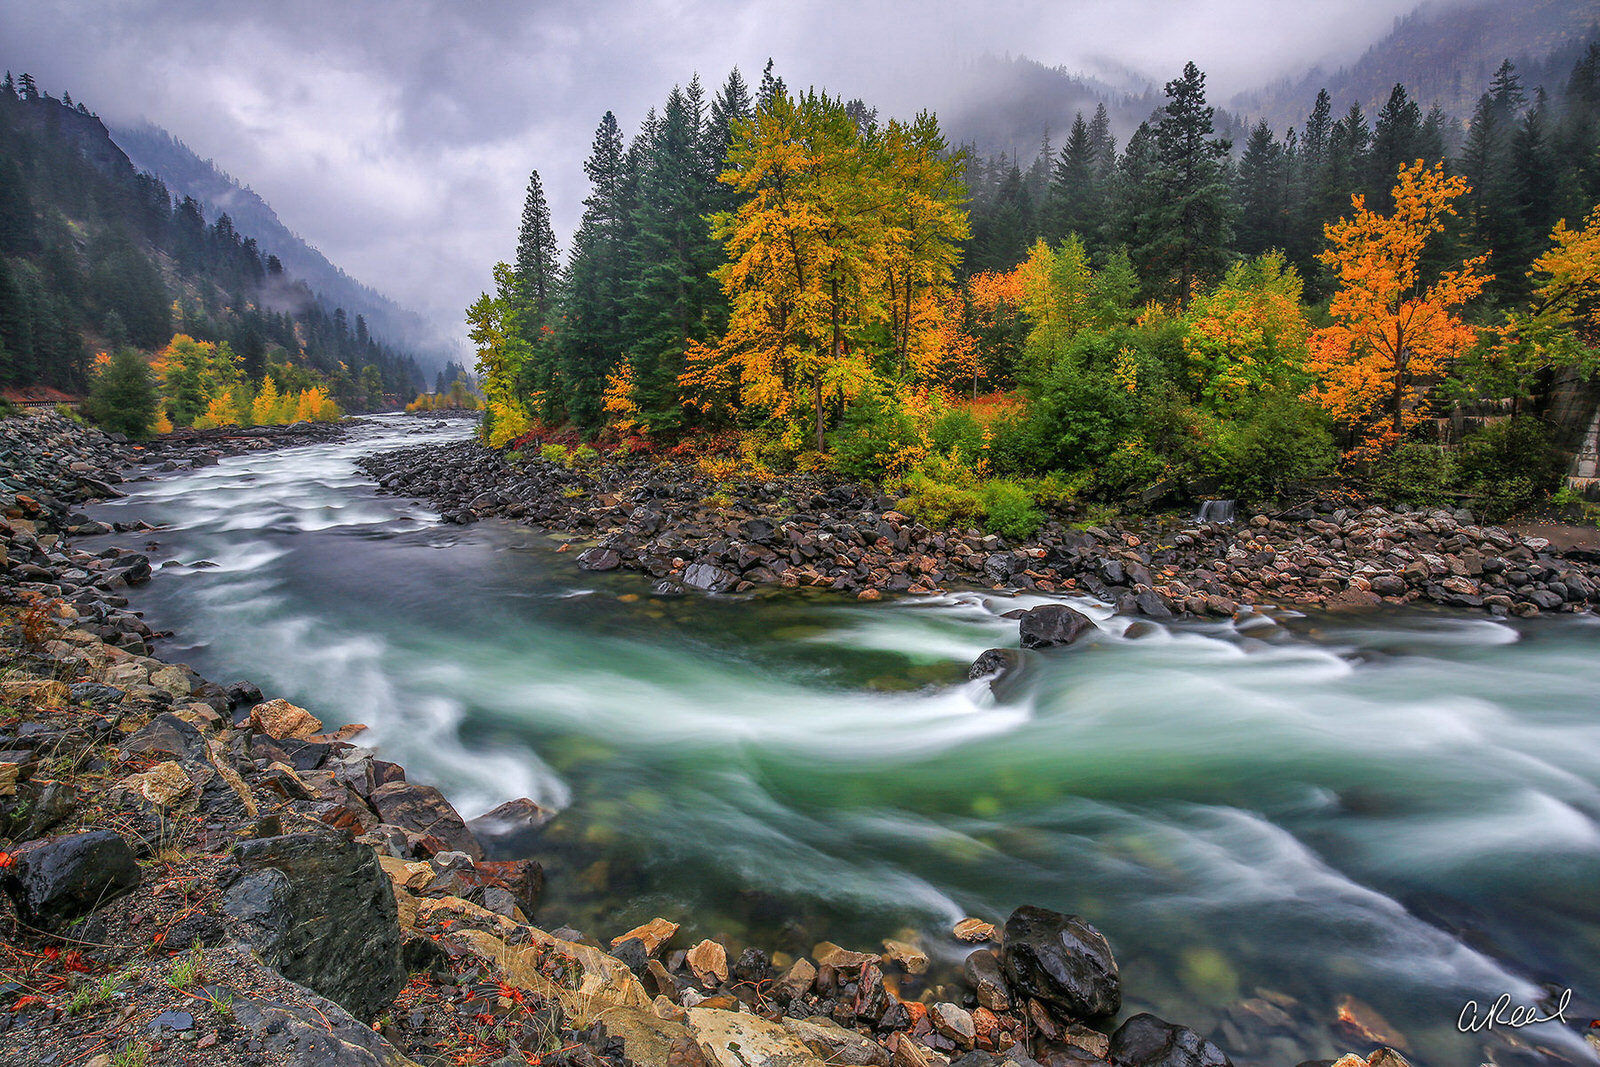 Fine Art Limited Edition of 50 - A fine art limited edition print titled Tumble Rumble Ramble photographed in Tumwater Canyon...